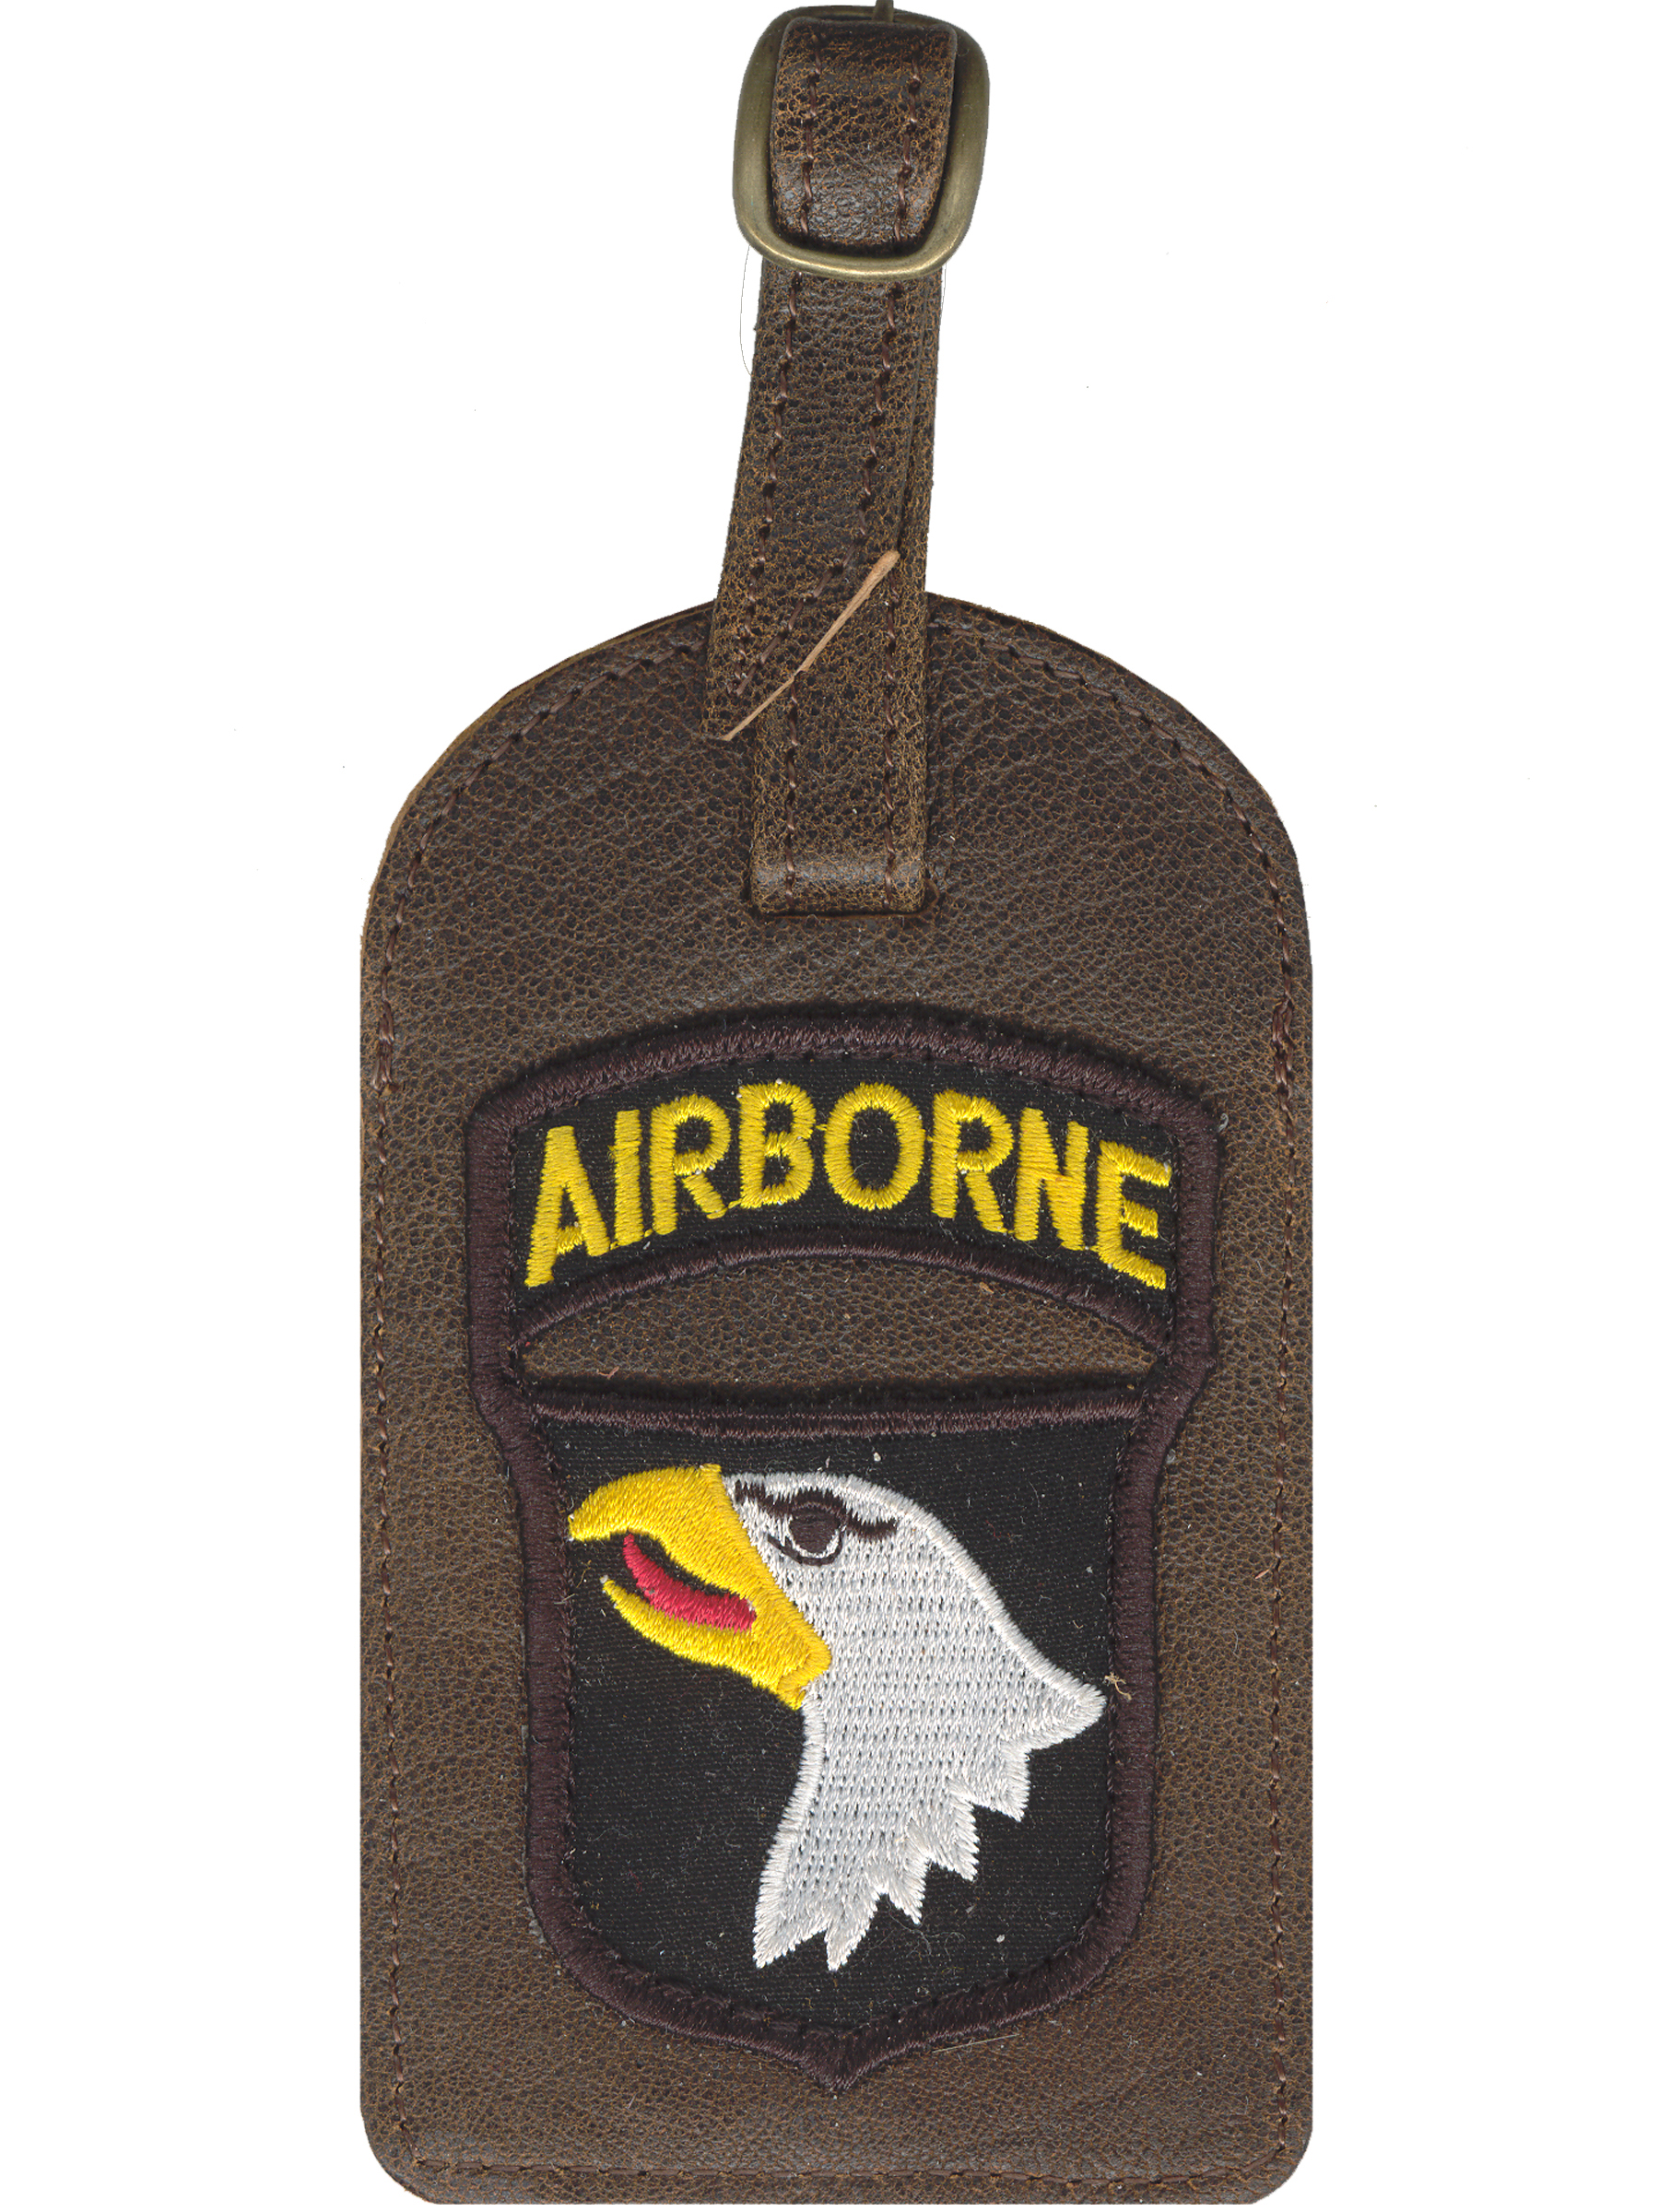 Aero squadron luggage tag w/eagle patch